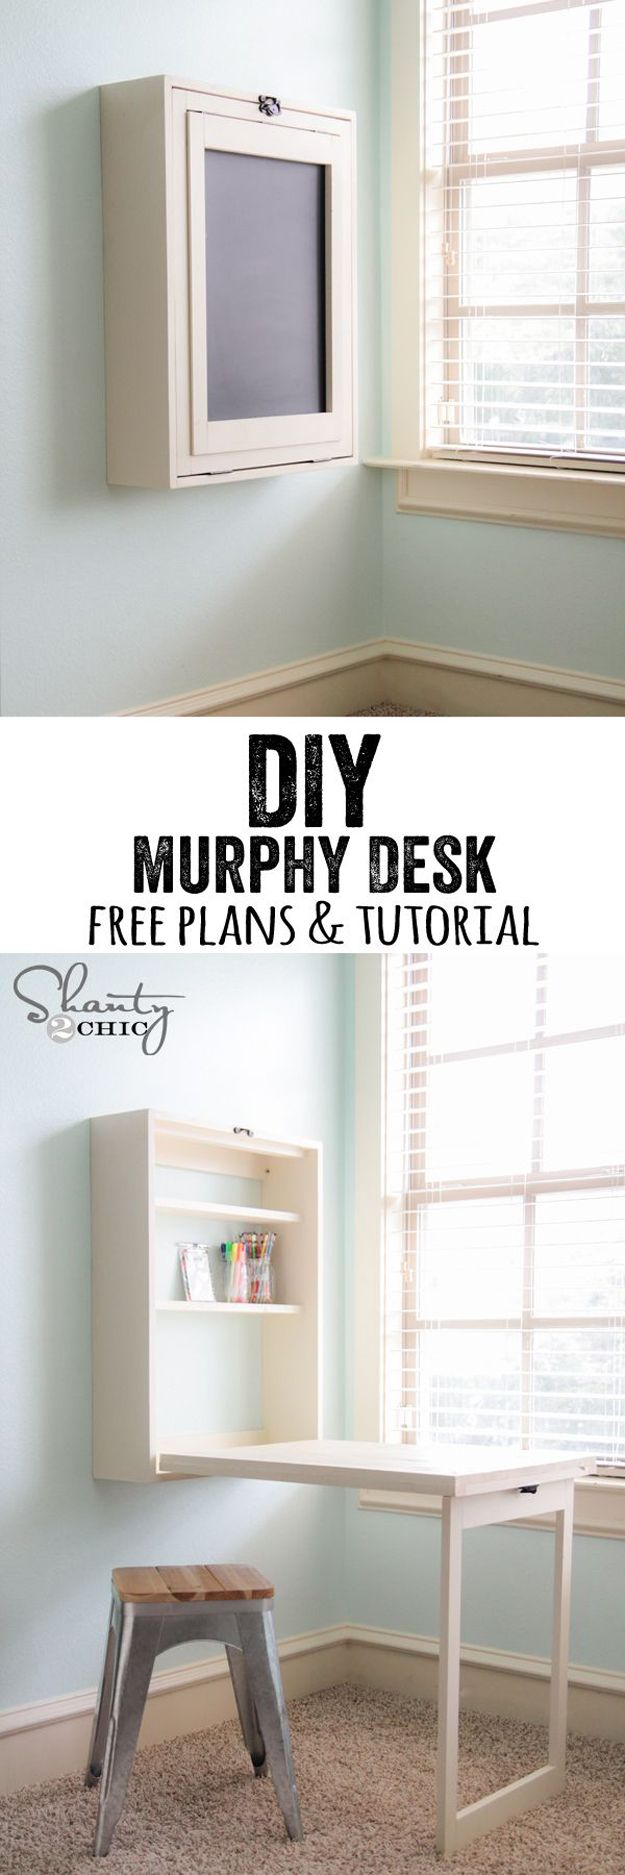 Free Diy Projects Best 25 Diy Projects For Bedroom Ideas On Pinterest Diy